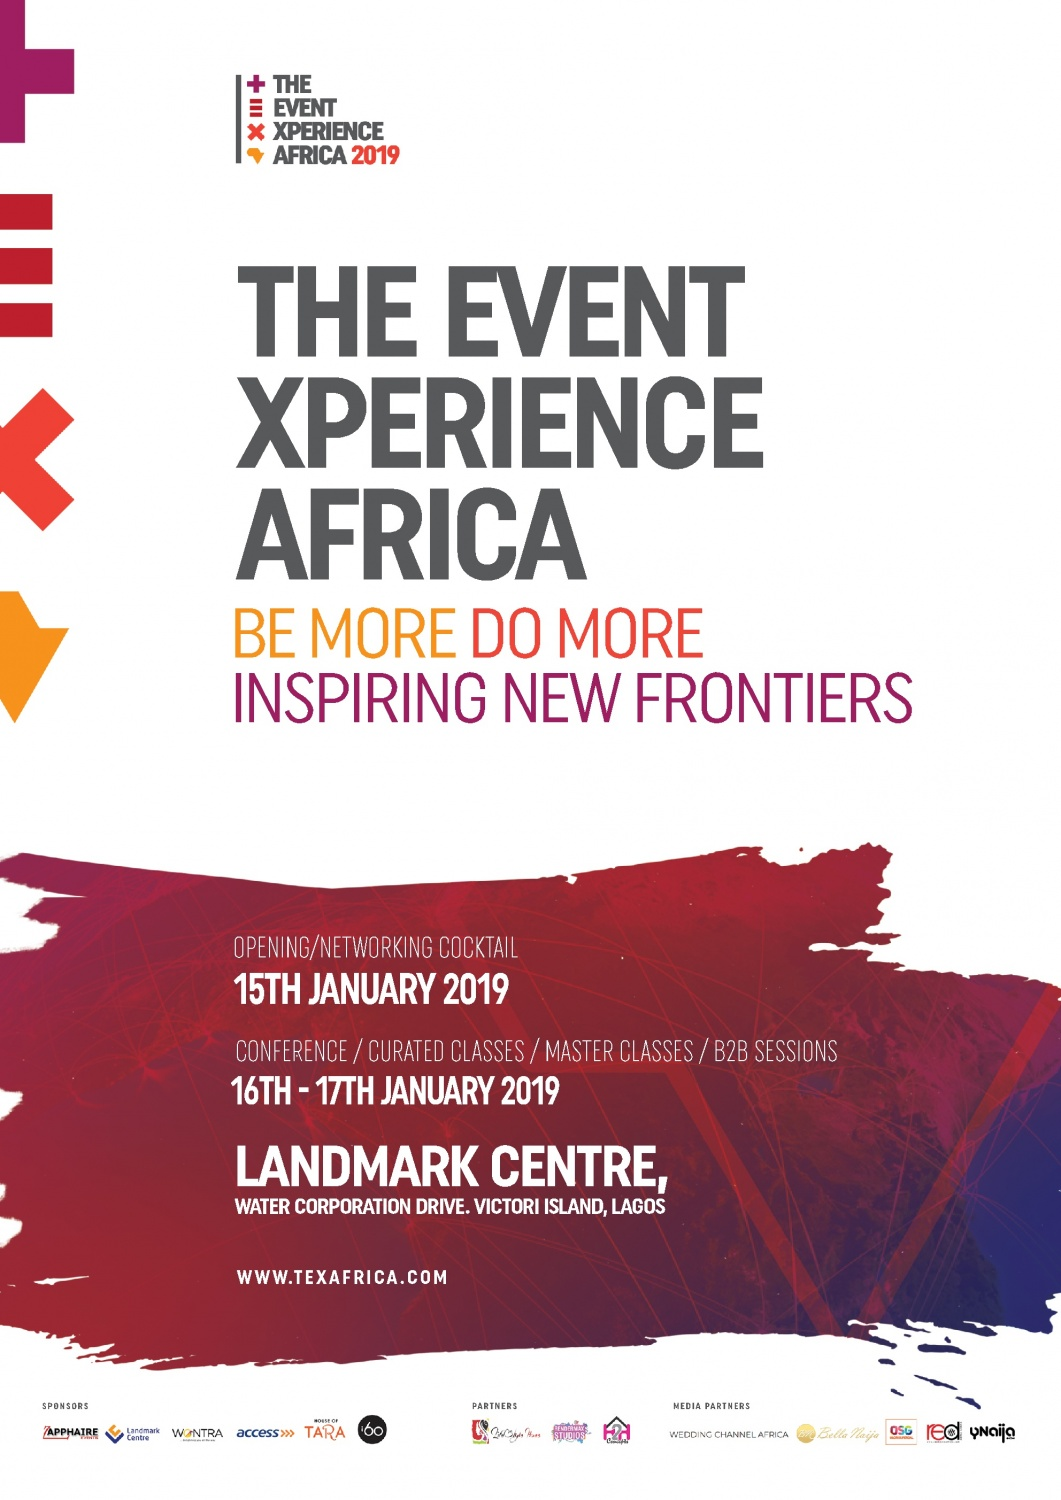 the event experience africa